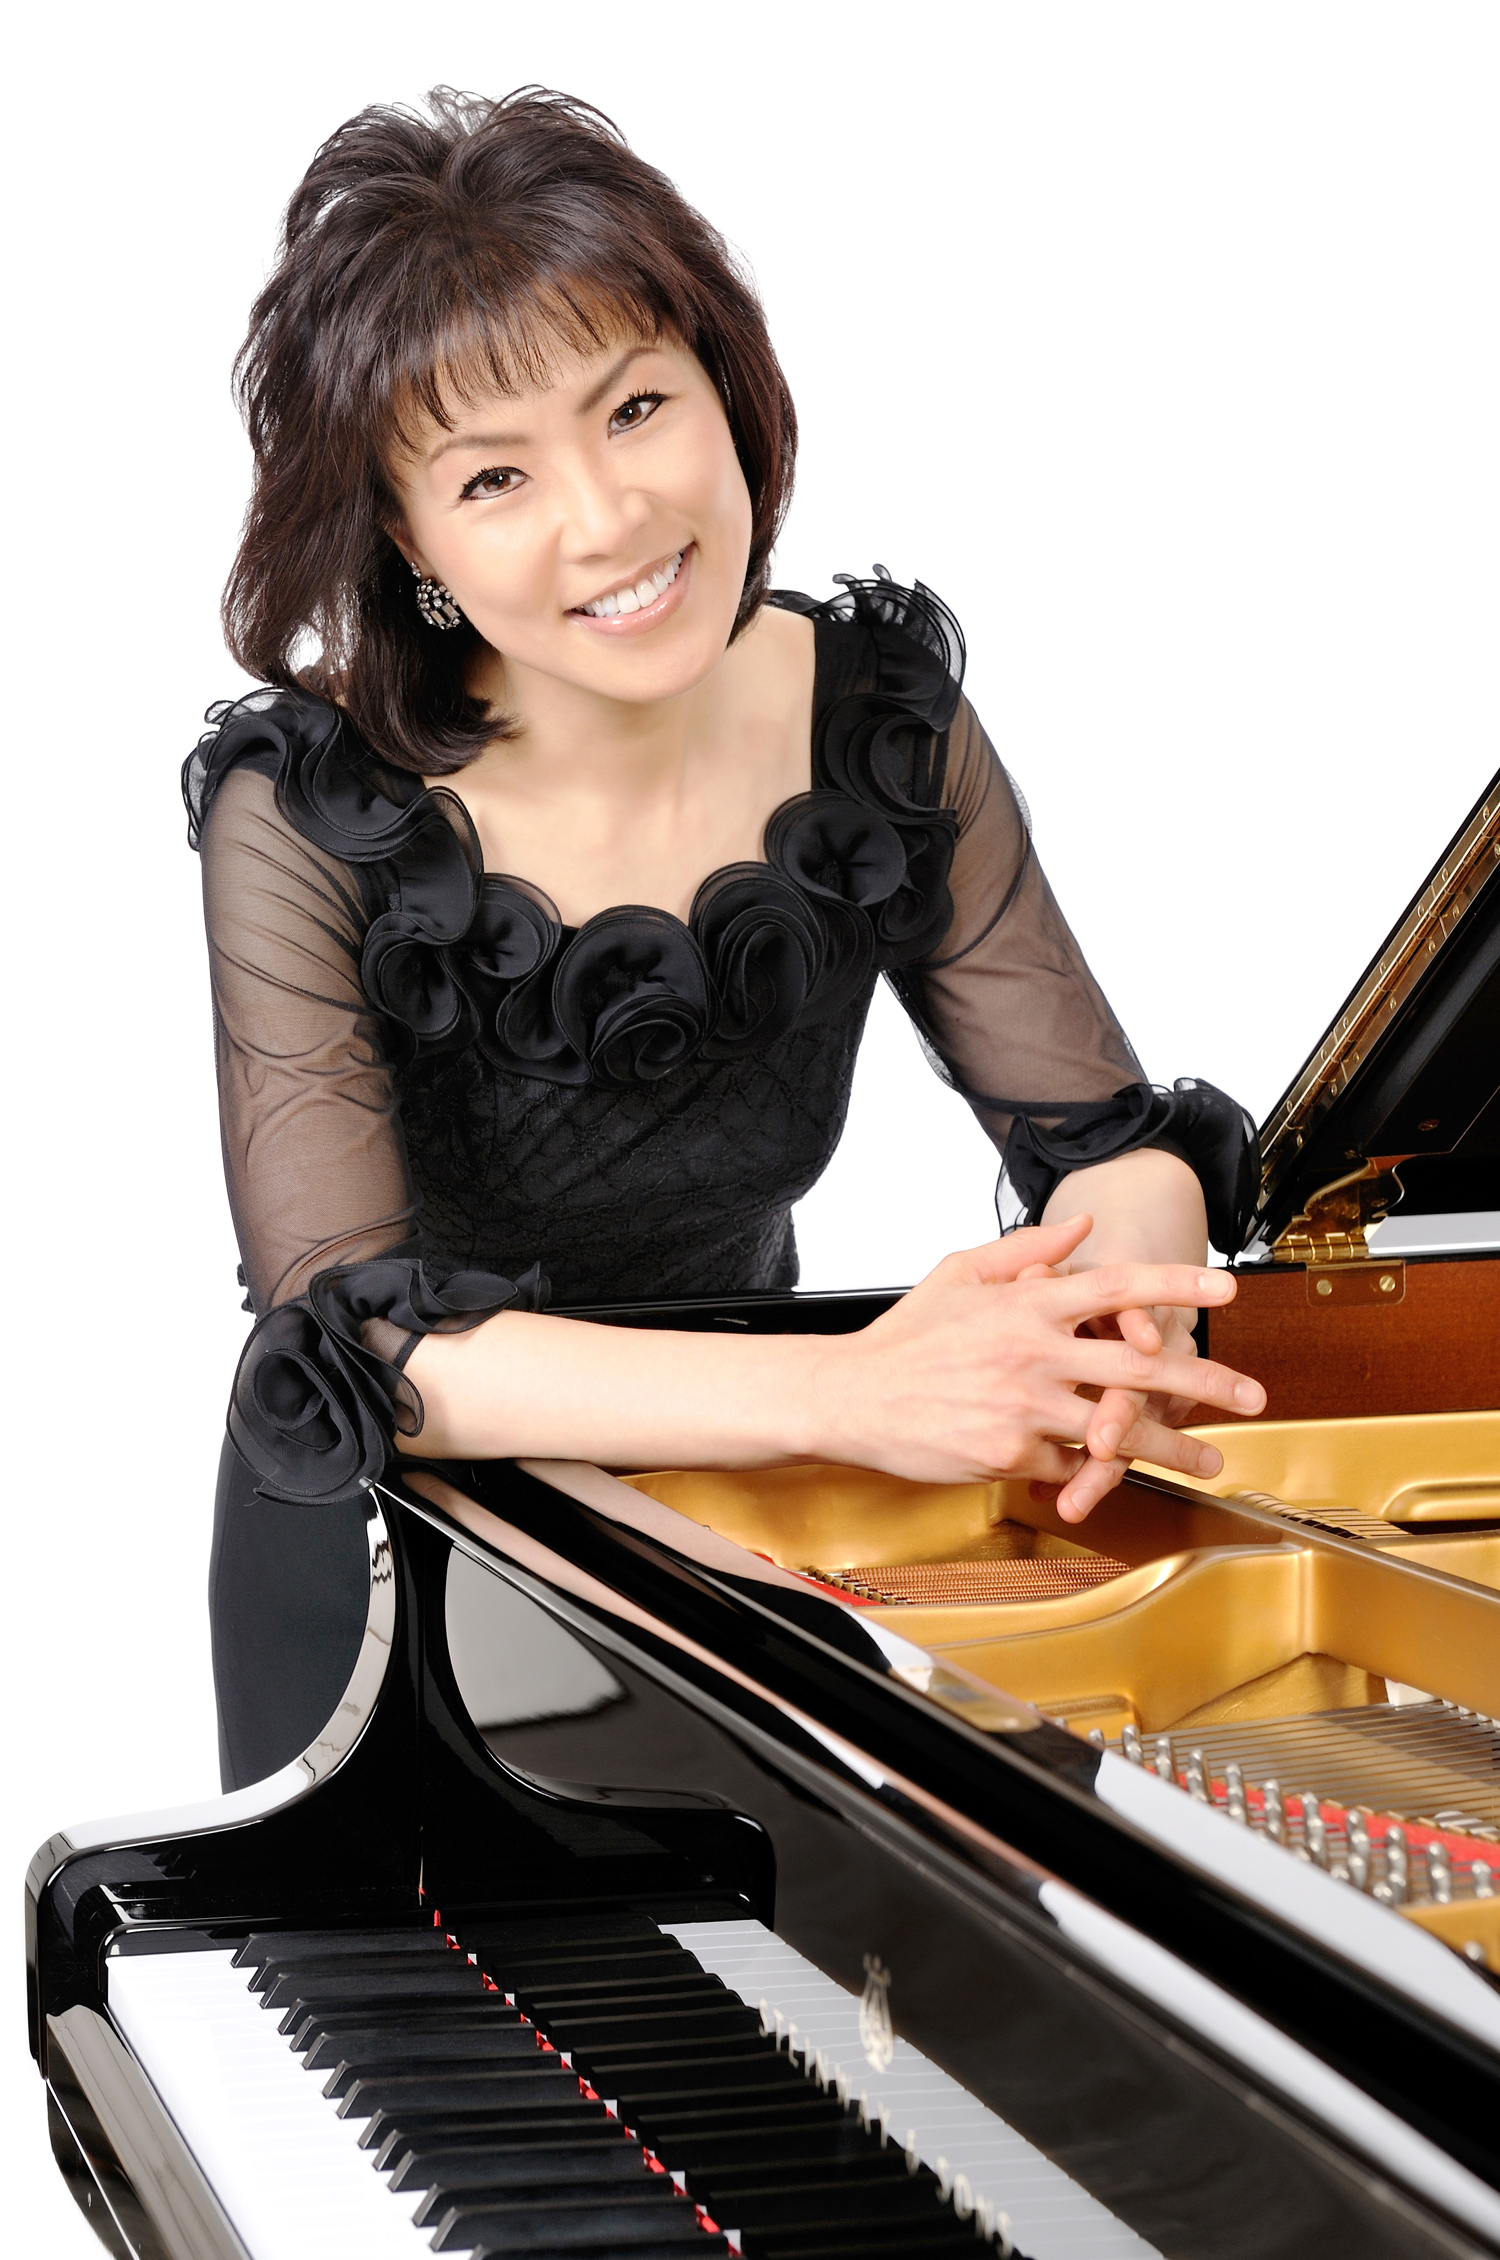 Star Pianist Performs in Bishop Auckland